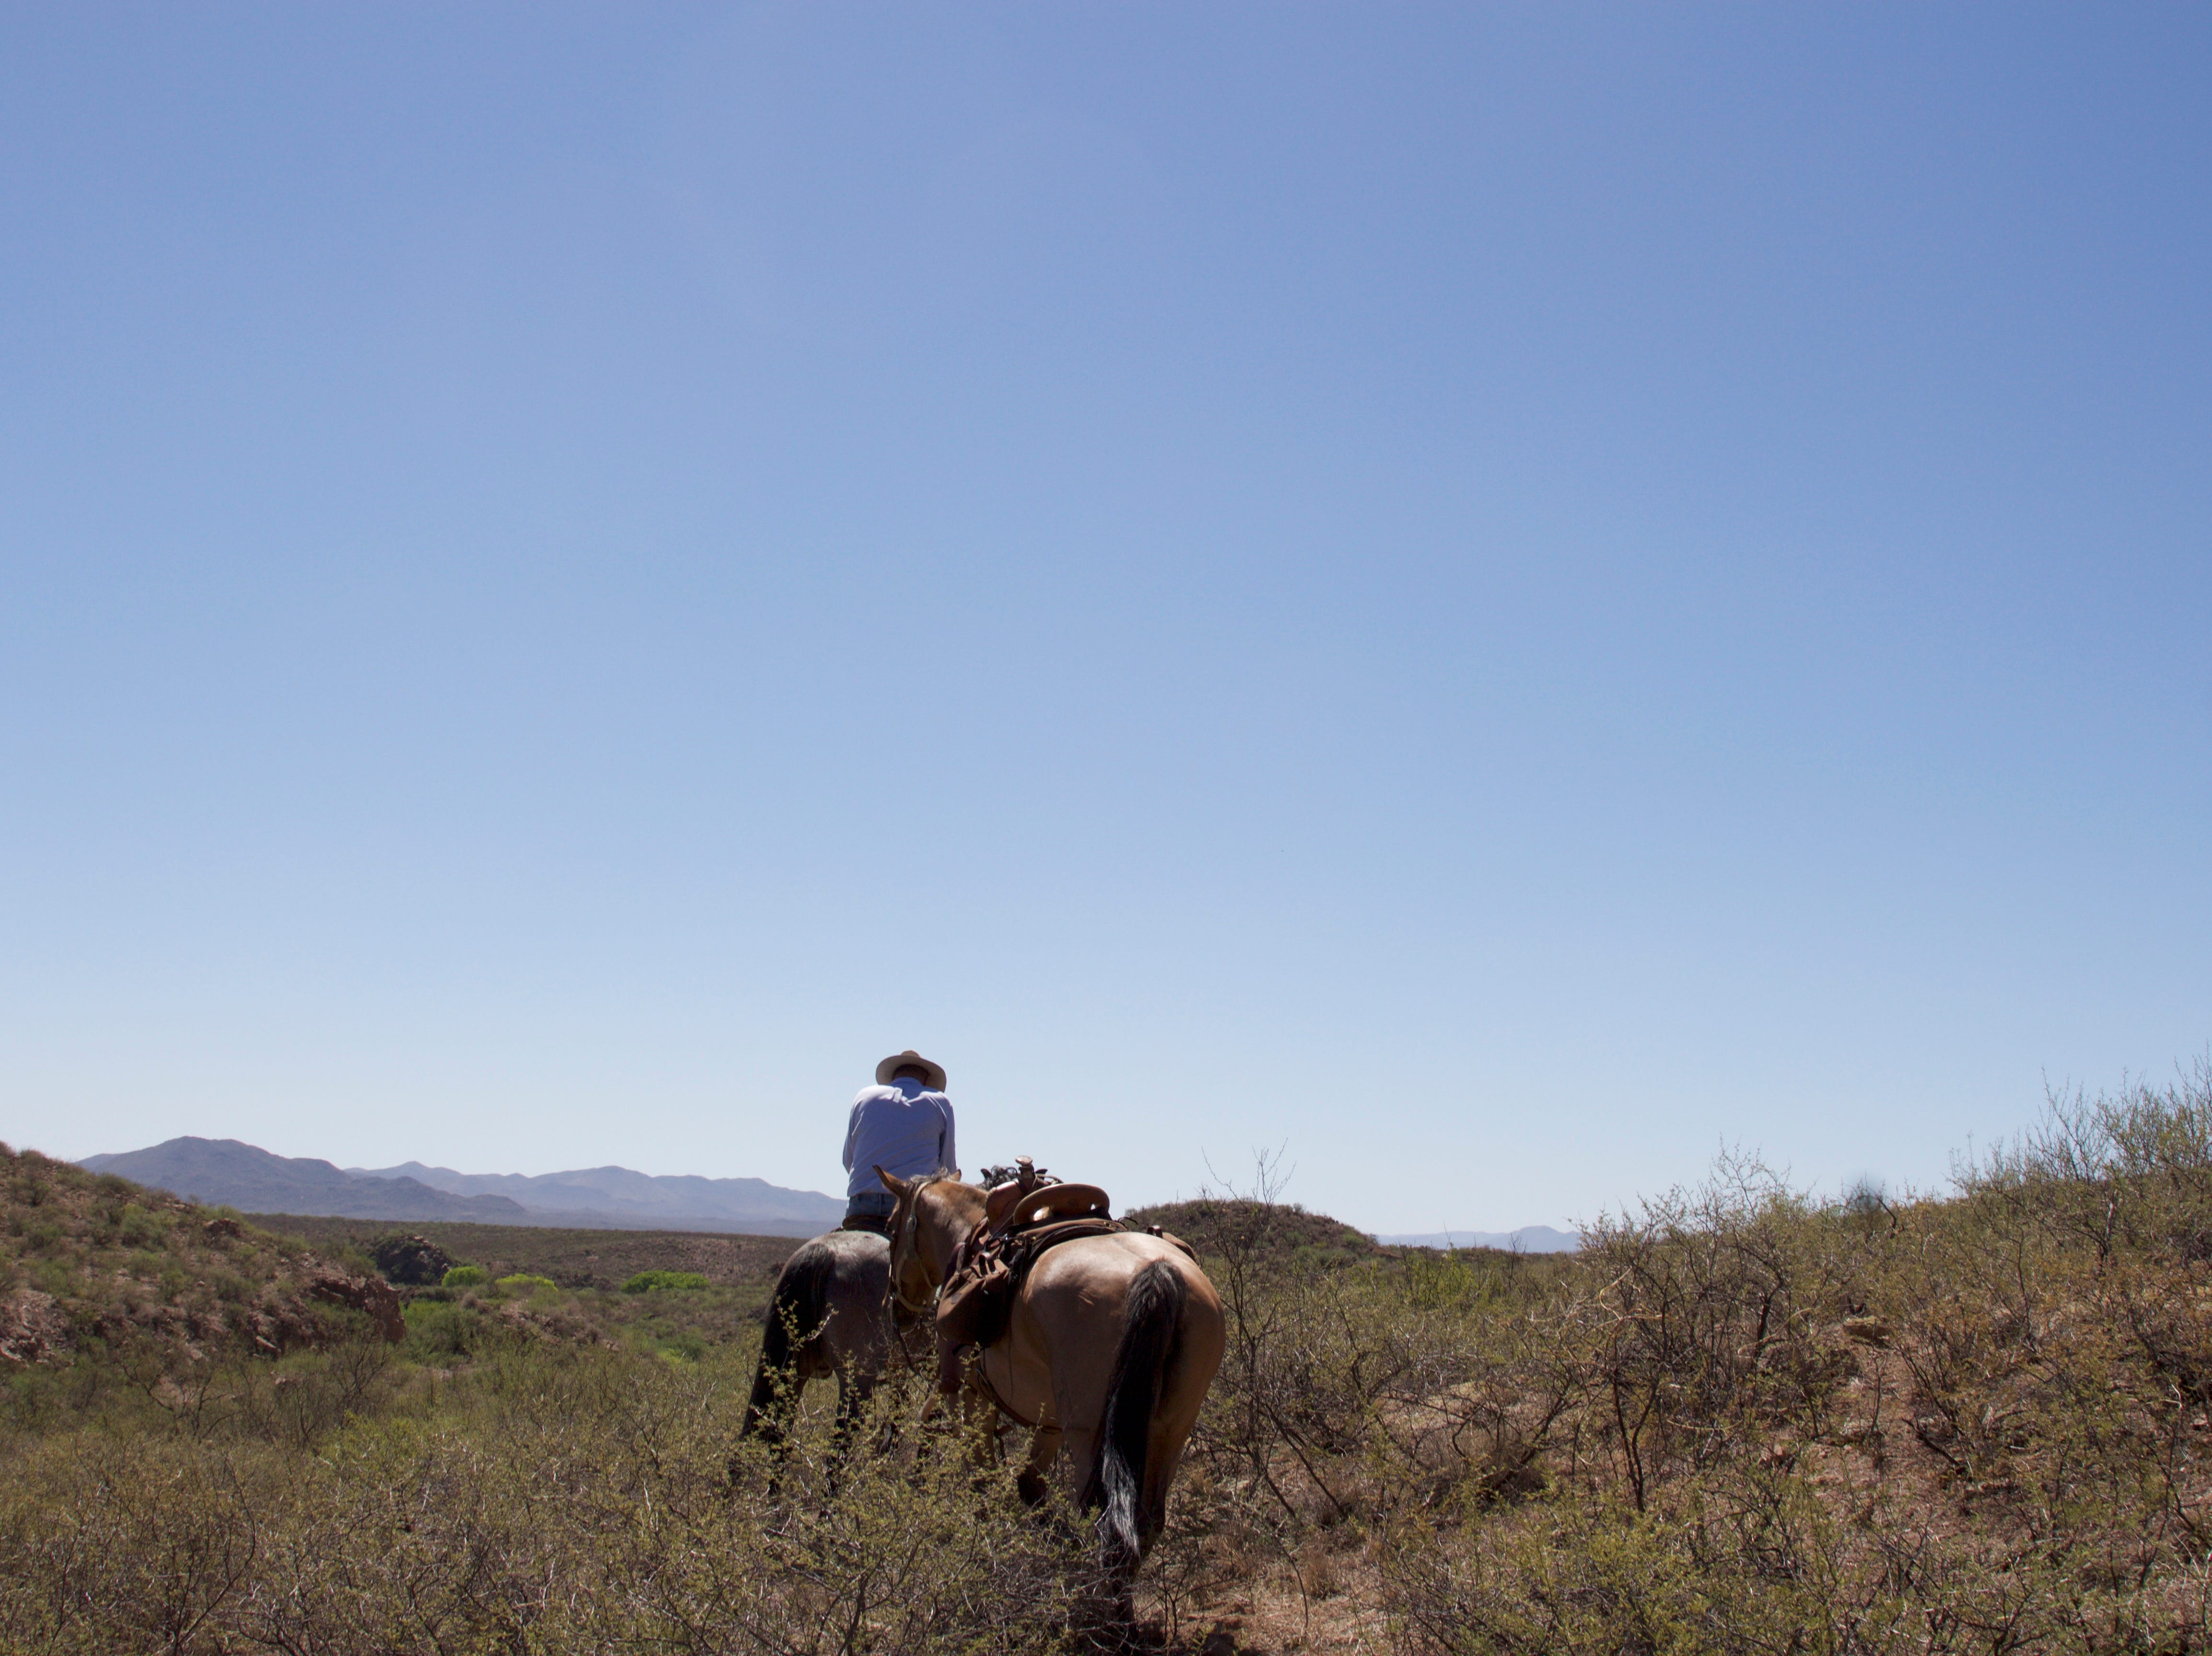 On June 23, 2018, Mike Hayhurst guides Holly Richter's horse while Richter maps water in a portion of  the Babocomari River that is unreachable by horse.